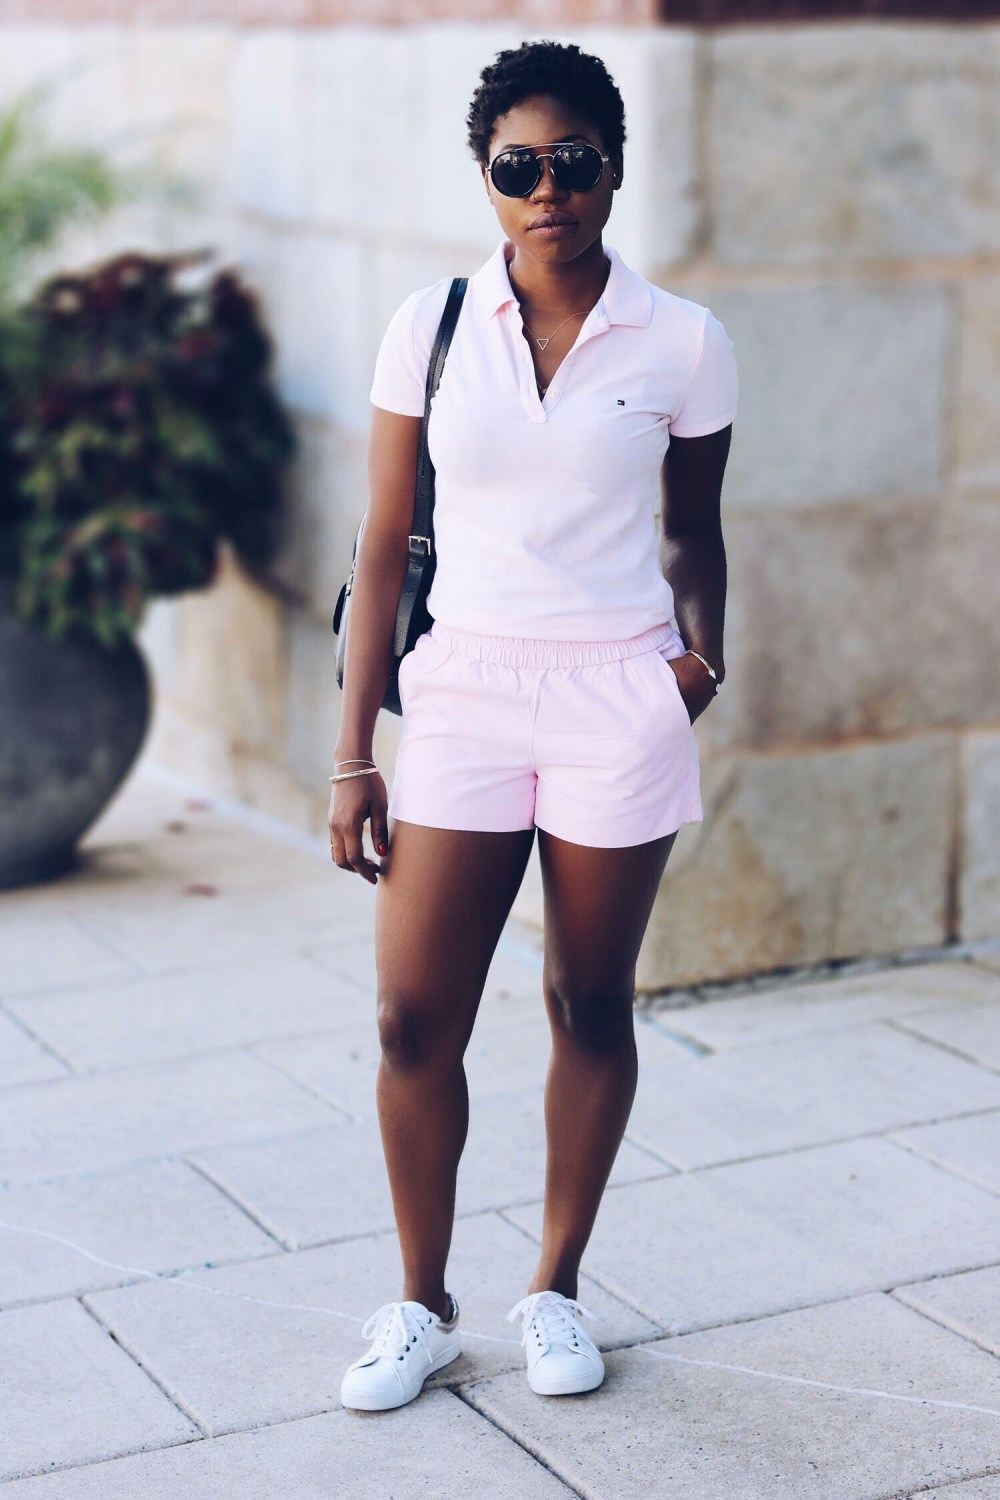 stylesynopsis-polo-shirt-sneakers-look